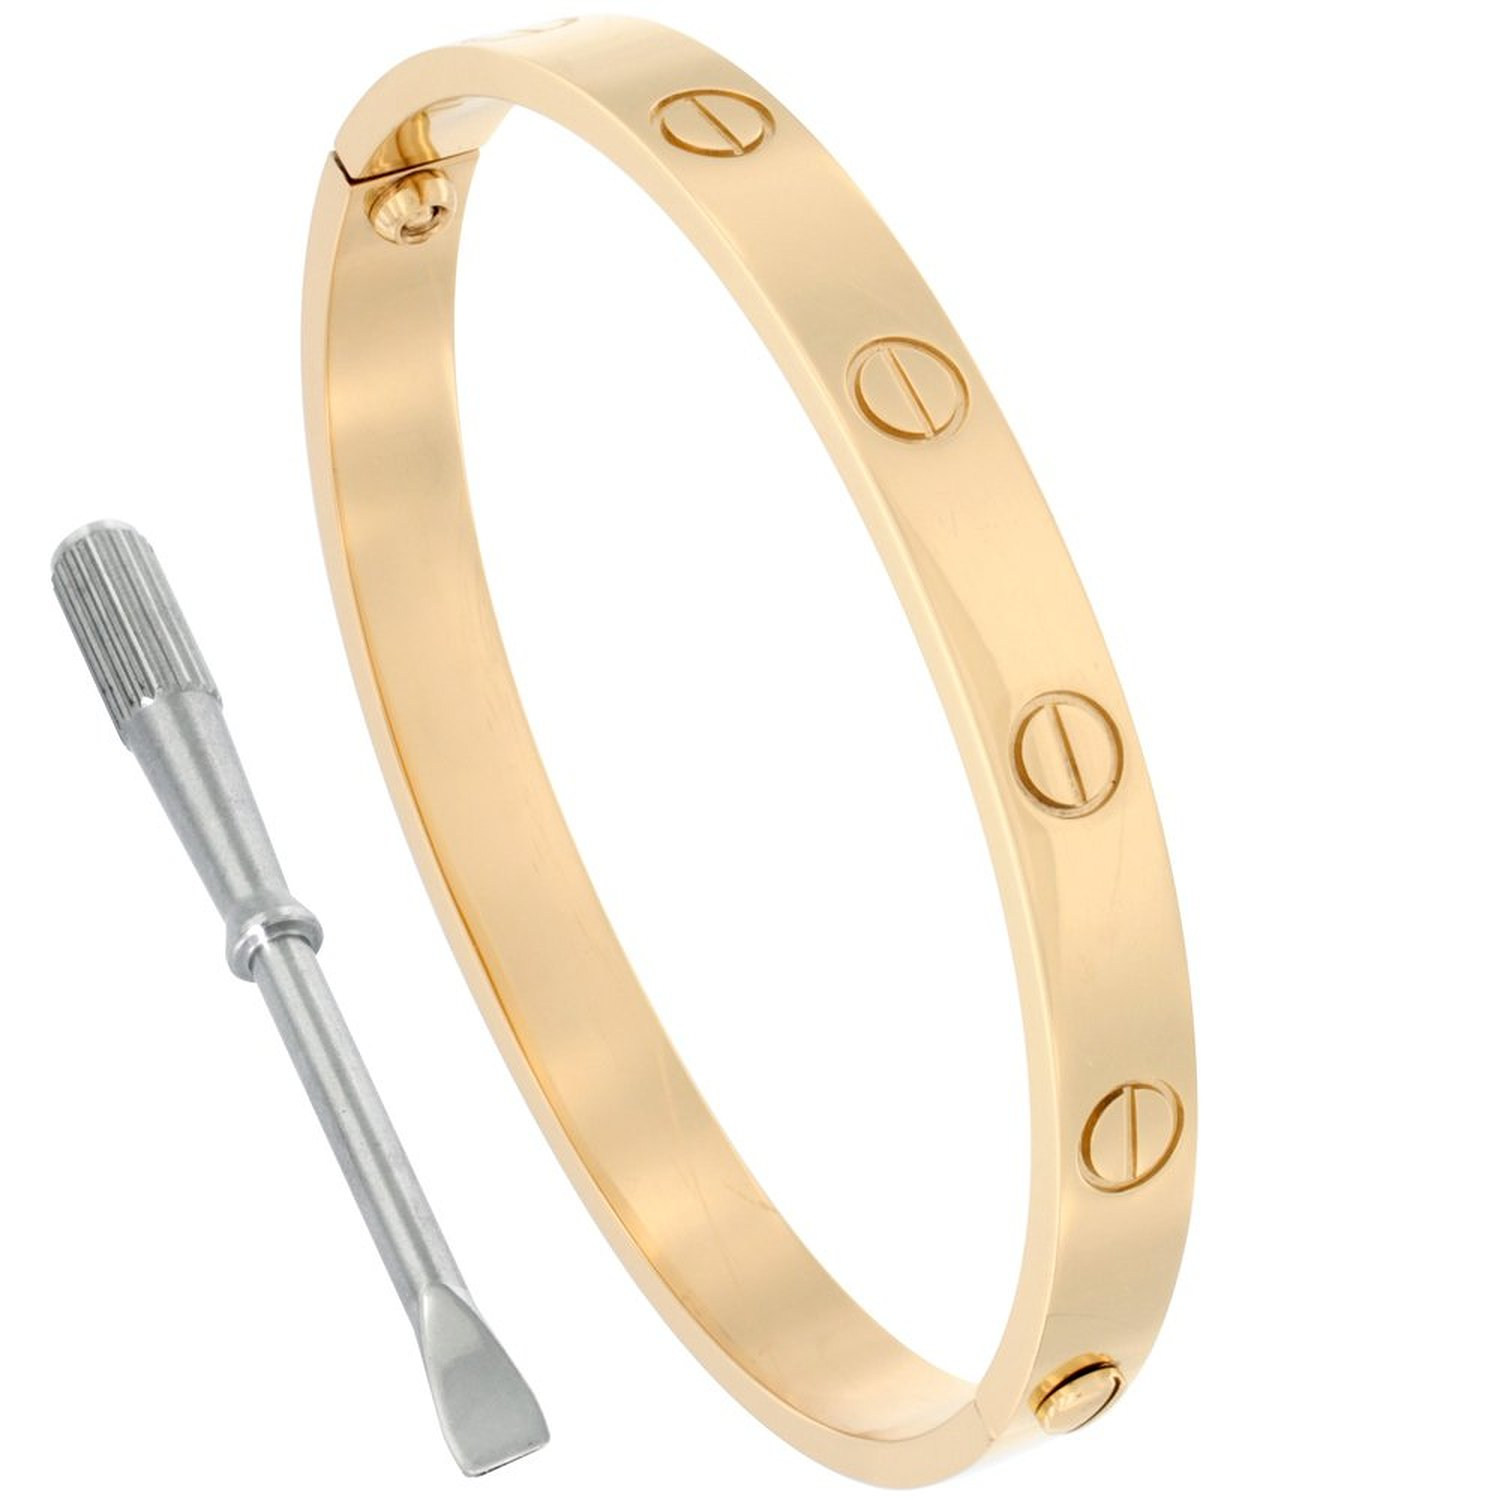 cartier bangles sterling detail this screw sale cuff silver bracelet rue love jewellery york with fashion bangle gold b inspired